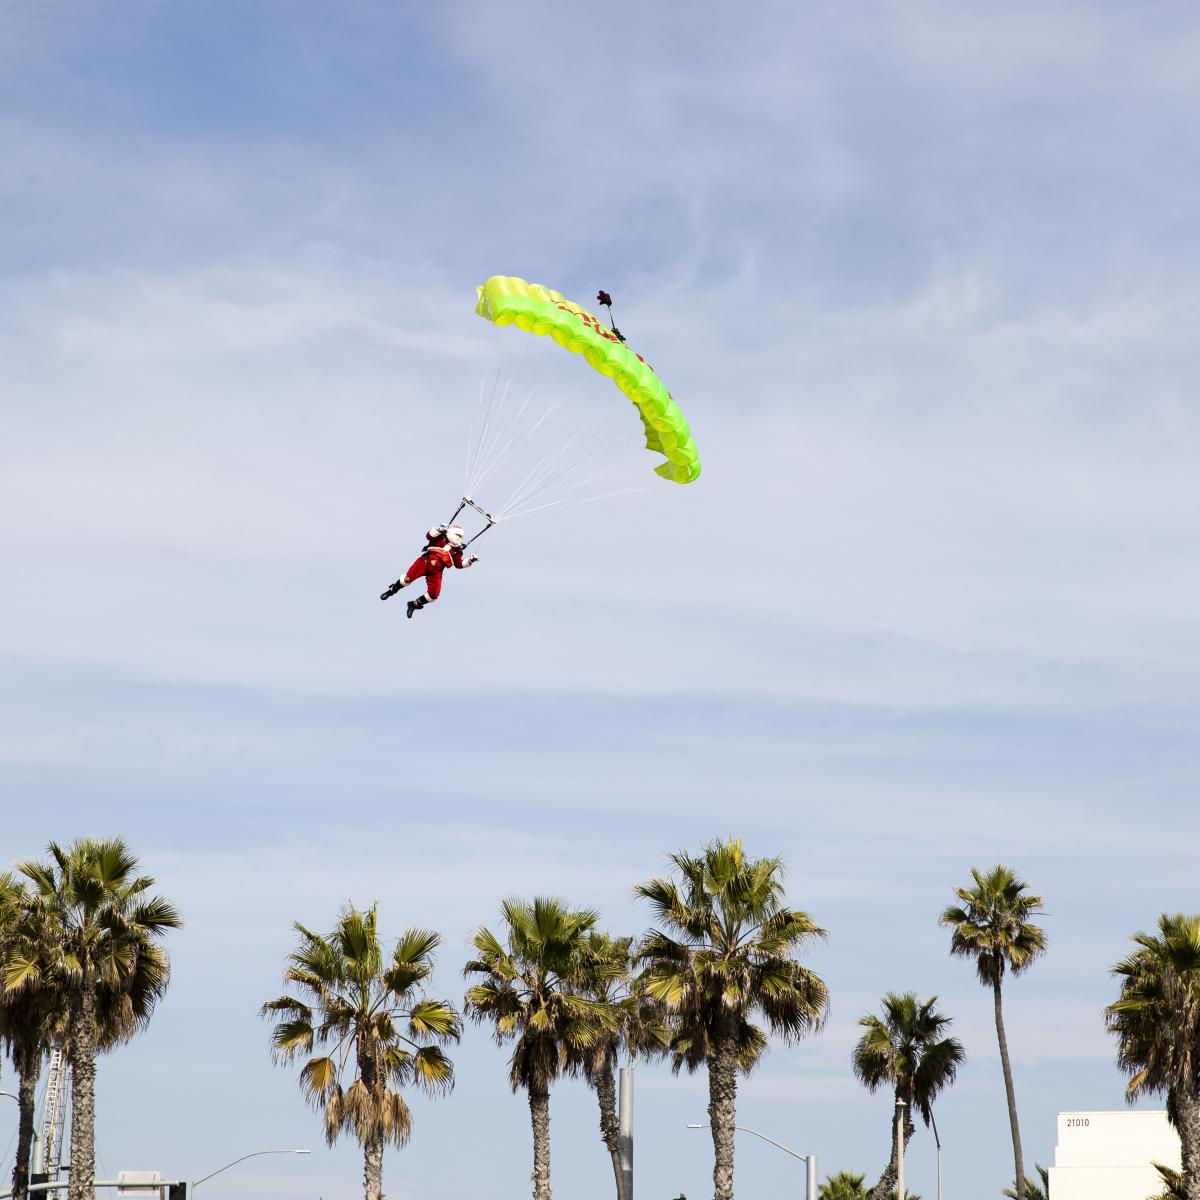 Santa Claus Sky Diving Arrival in Huntington Beach